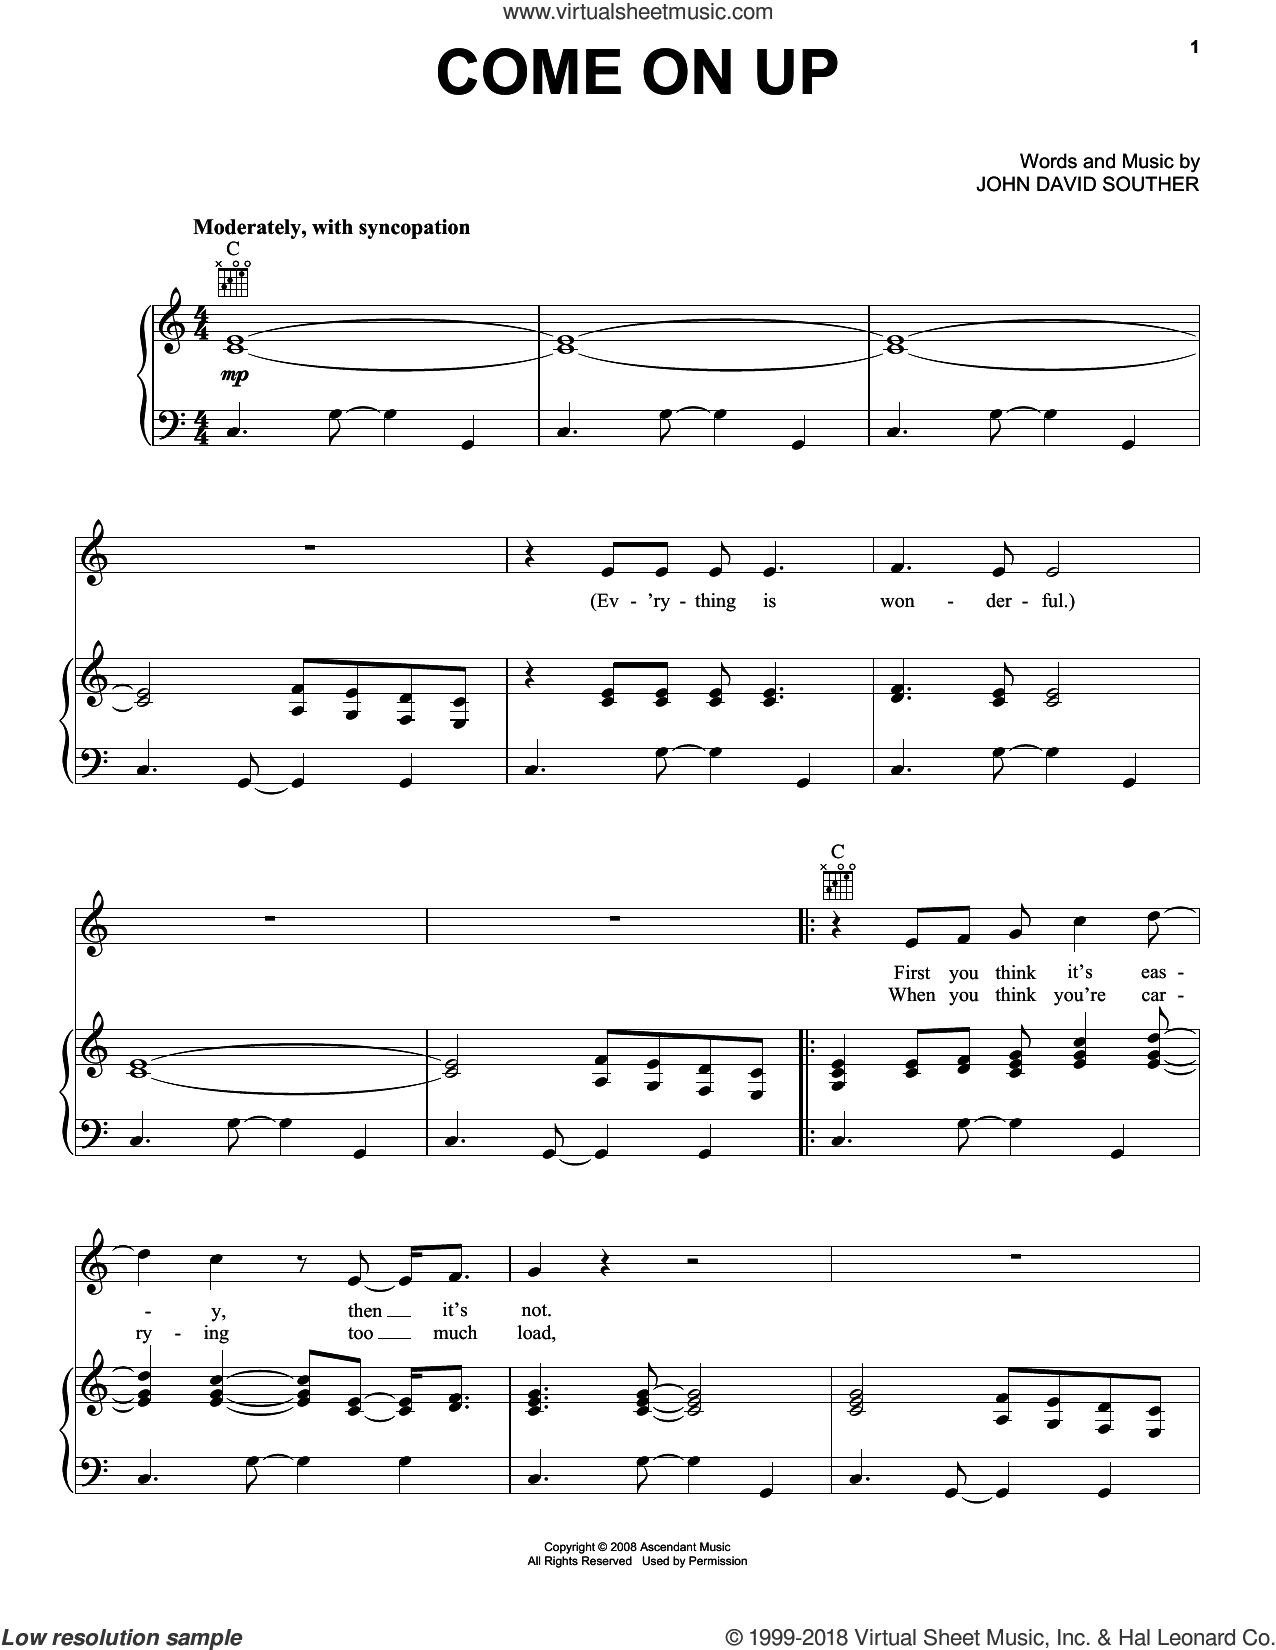 Come On Up sheet music for voice, piano or guitar by John David Souther, intermediate. Score Image Preview.